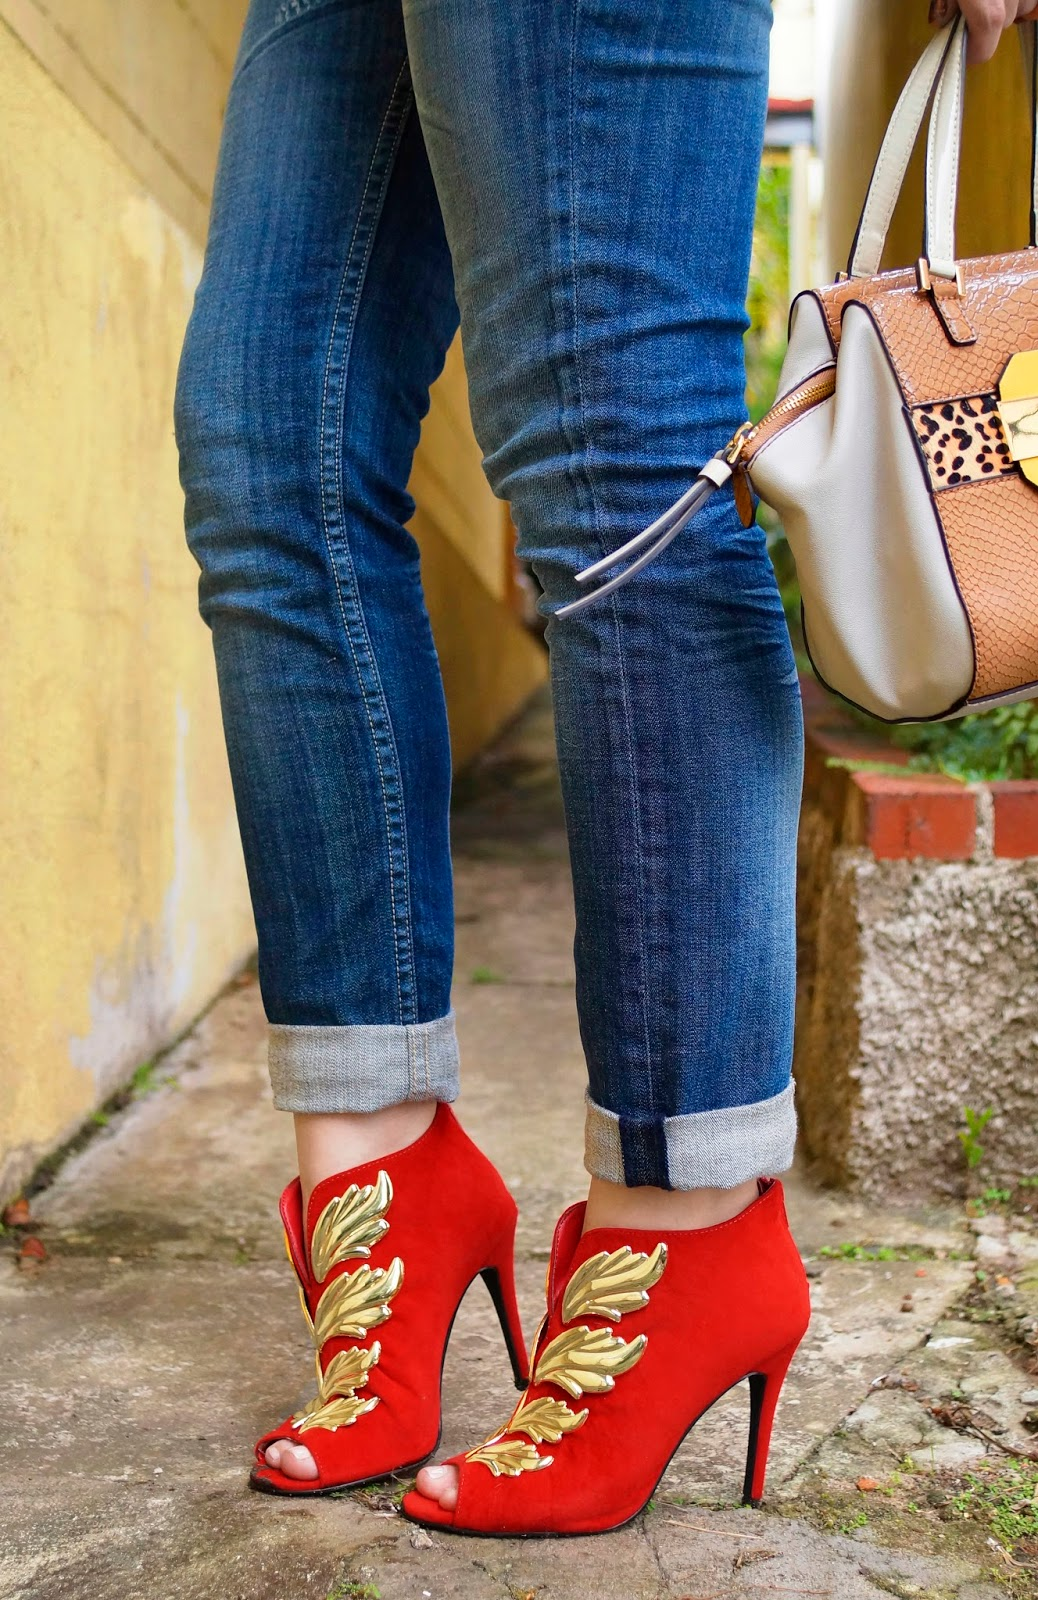 Fabulous Shoes, Red Booties